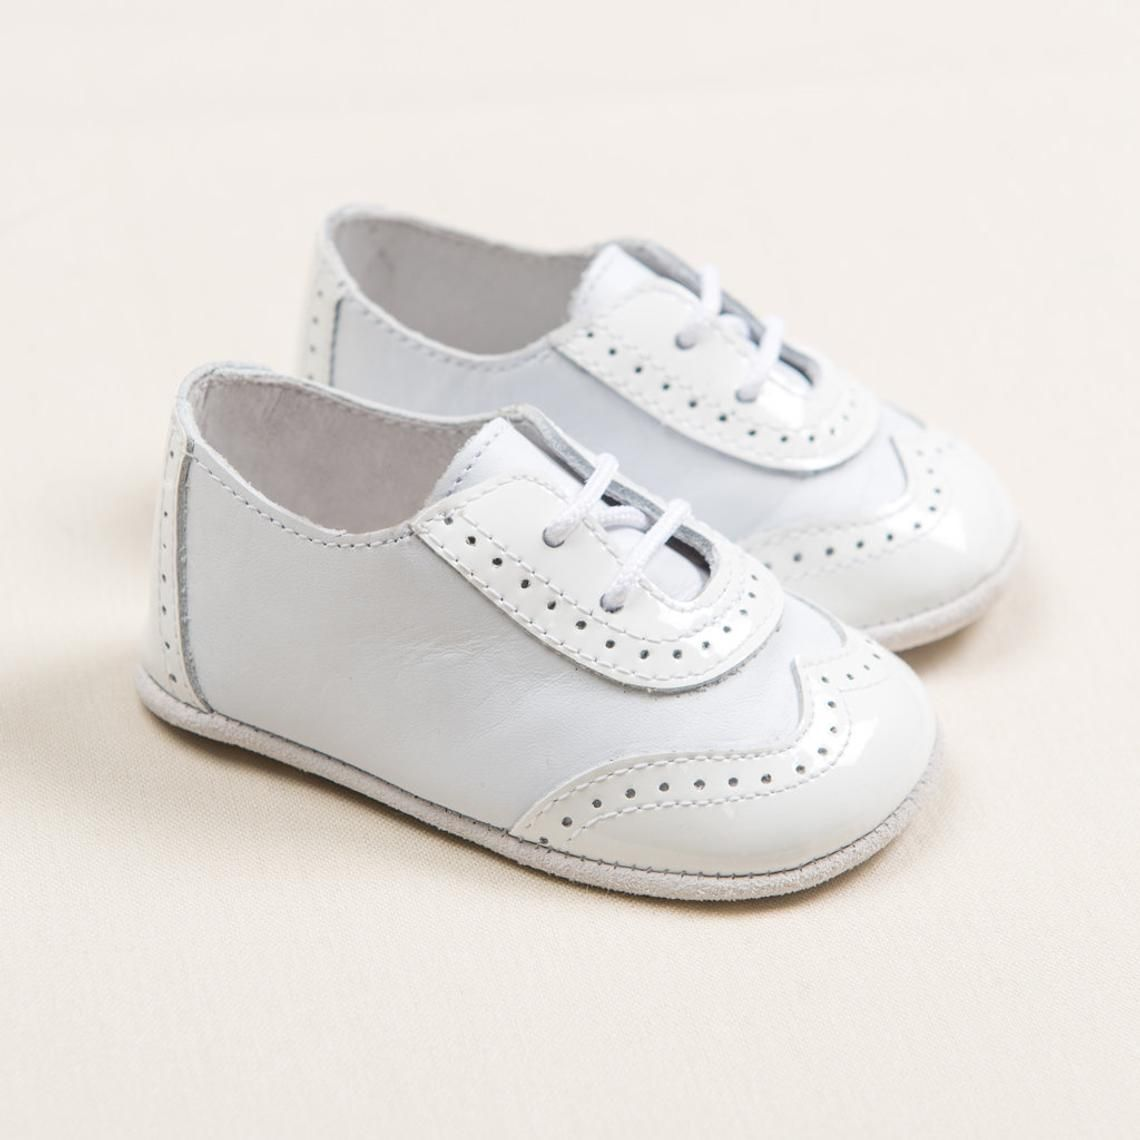 SAMPLE SALE - Baby Boys Leather Wingtip Shoes - White ...